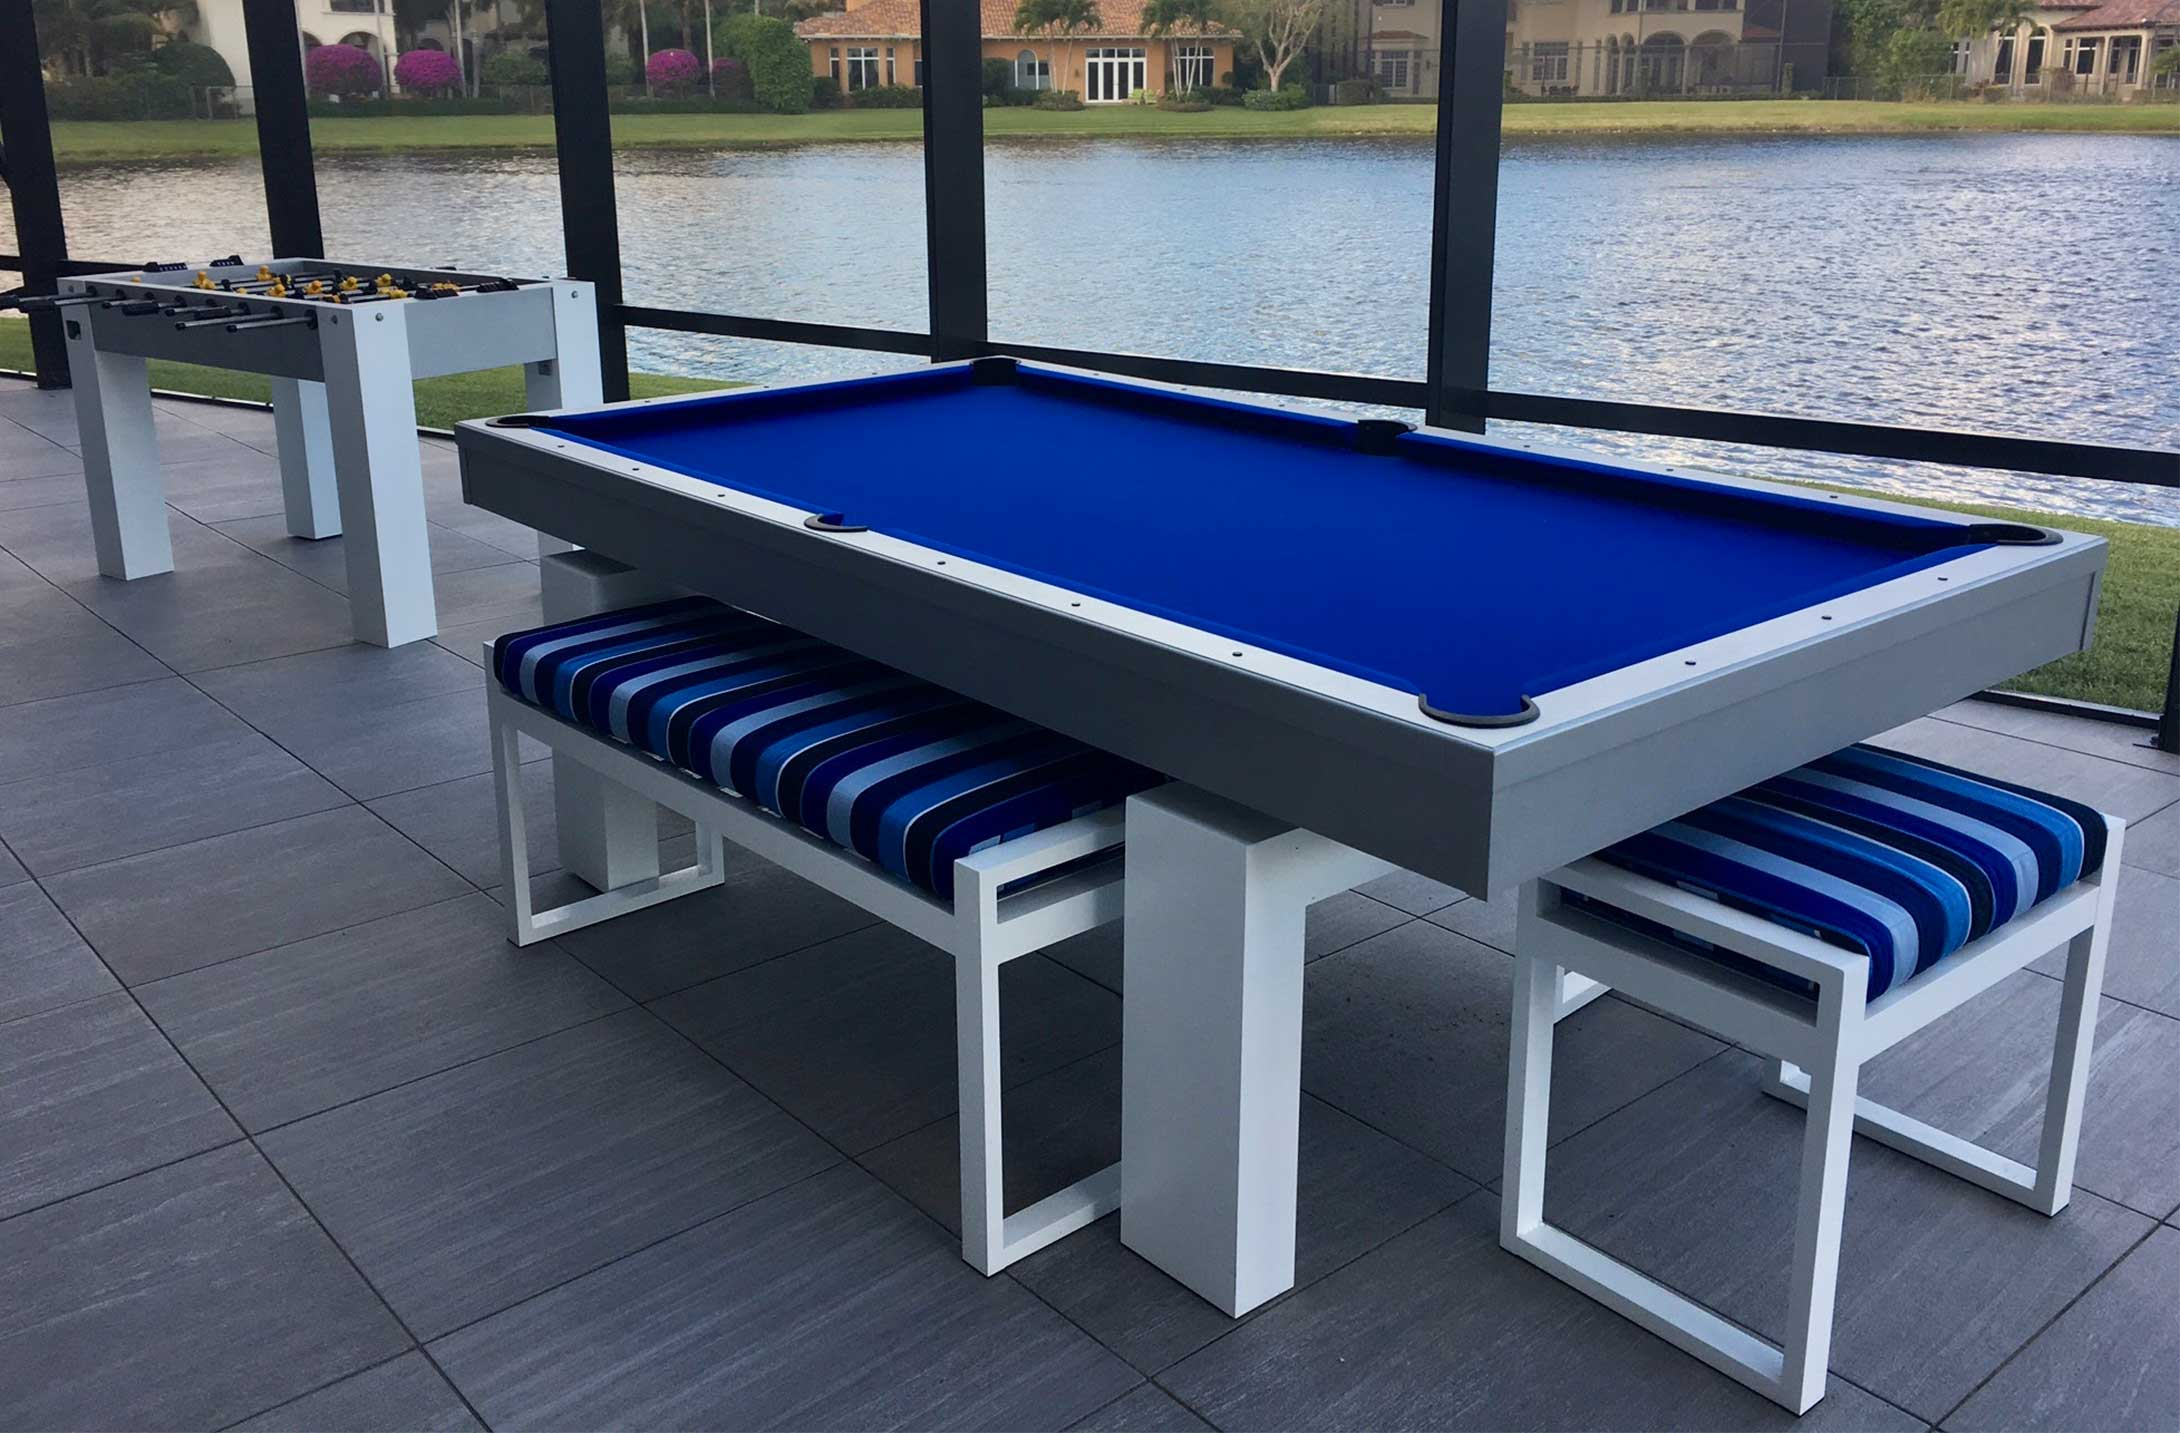 South Beach model custom outdoor pool table alongside custom foosball game table in client's Southwest Florida lanai